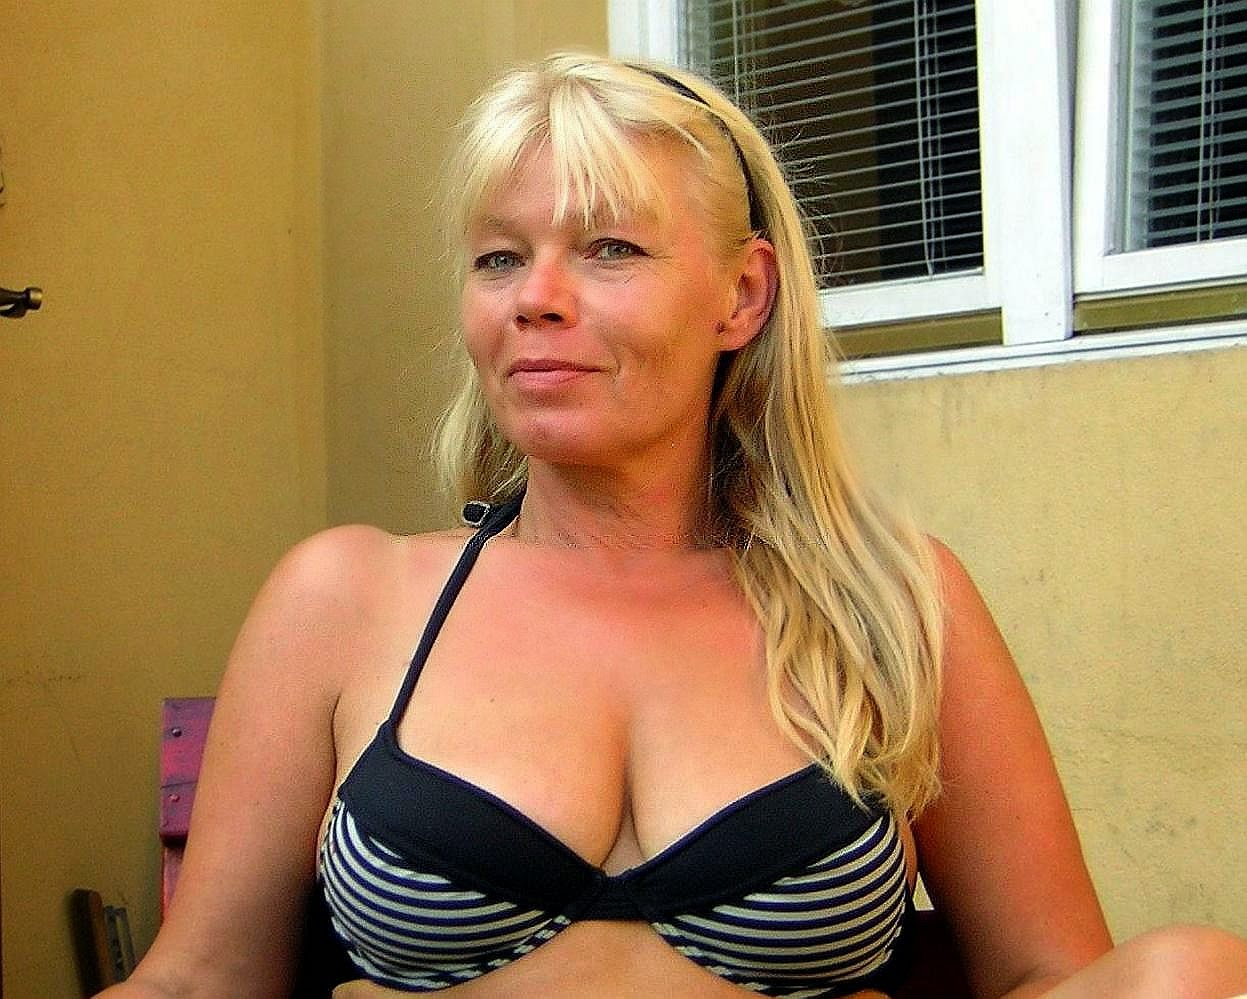 Atheist 50 To 55 Sexual Encounter Woman Seeking Man